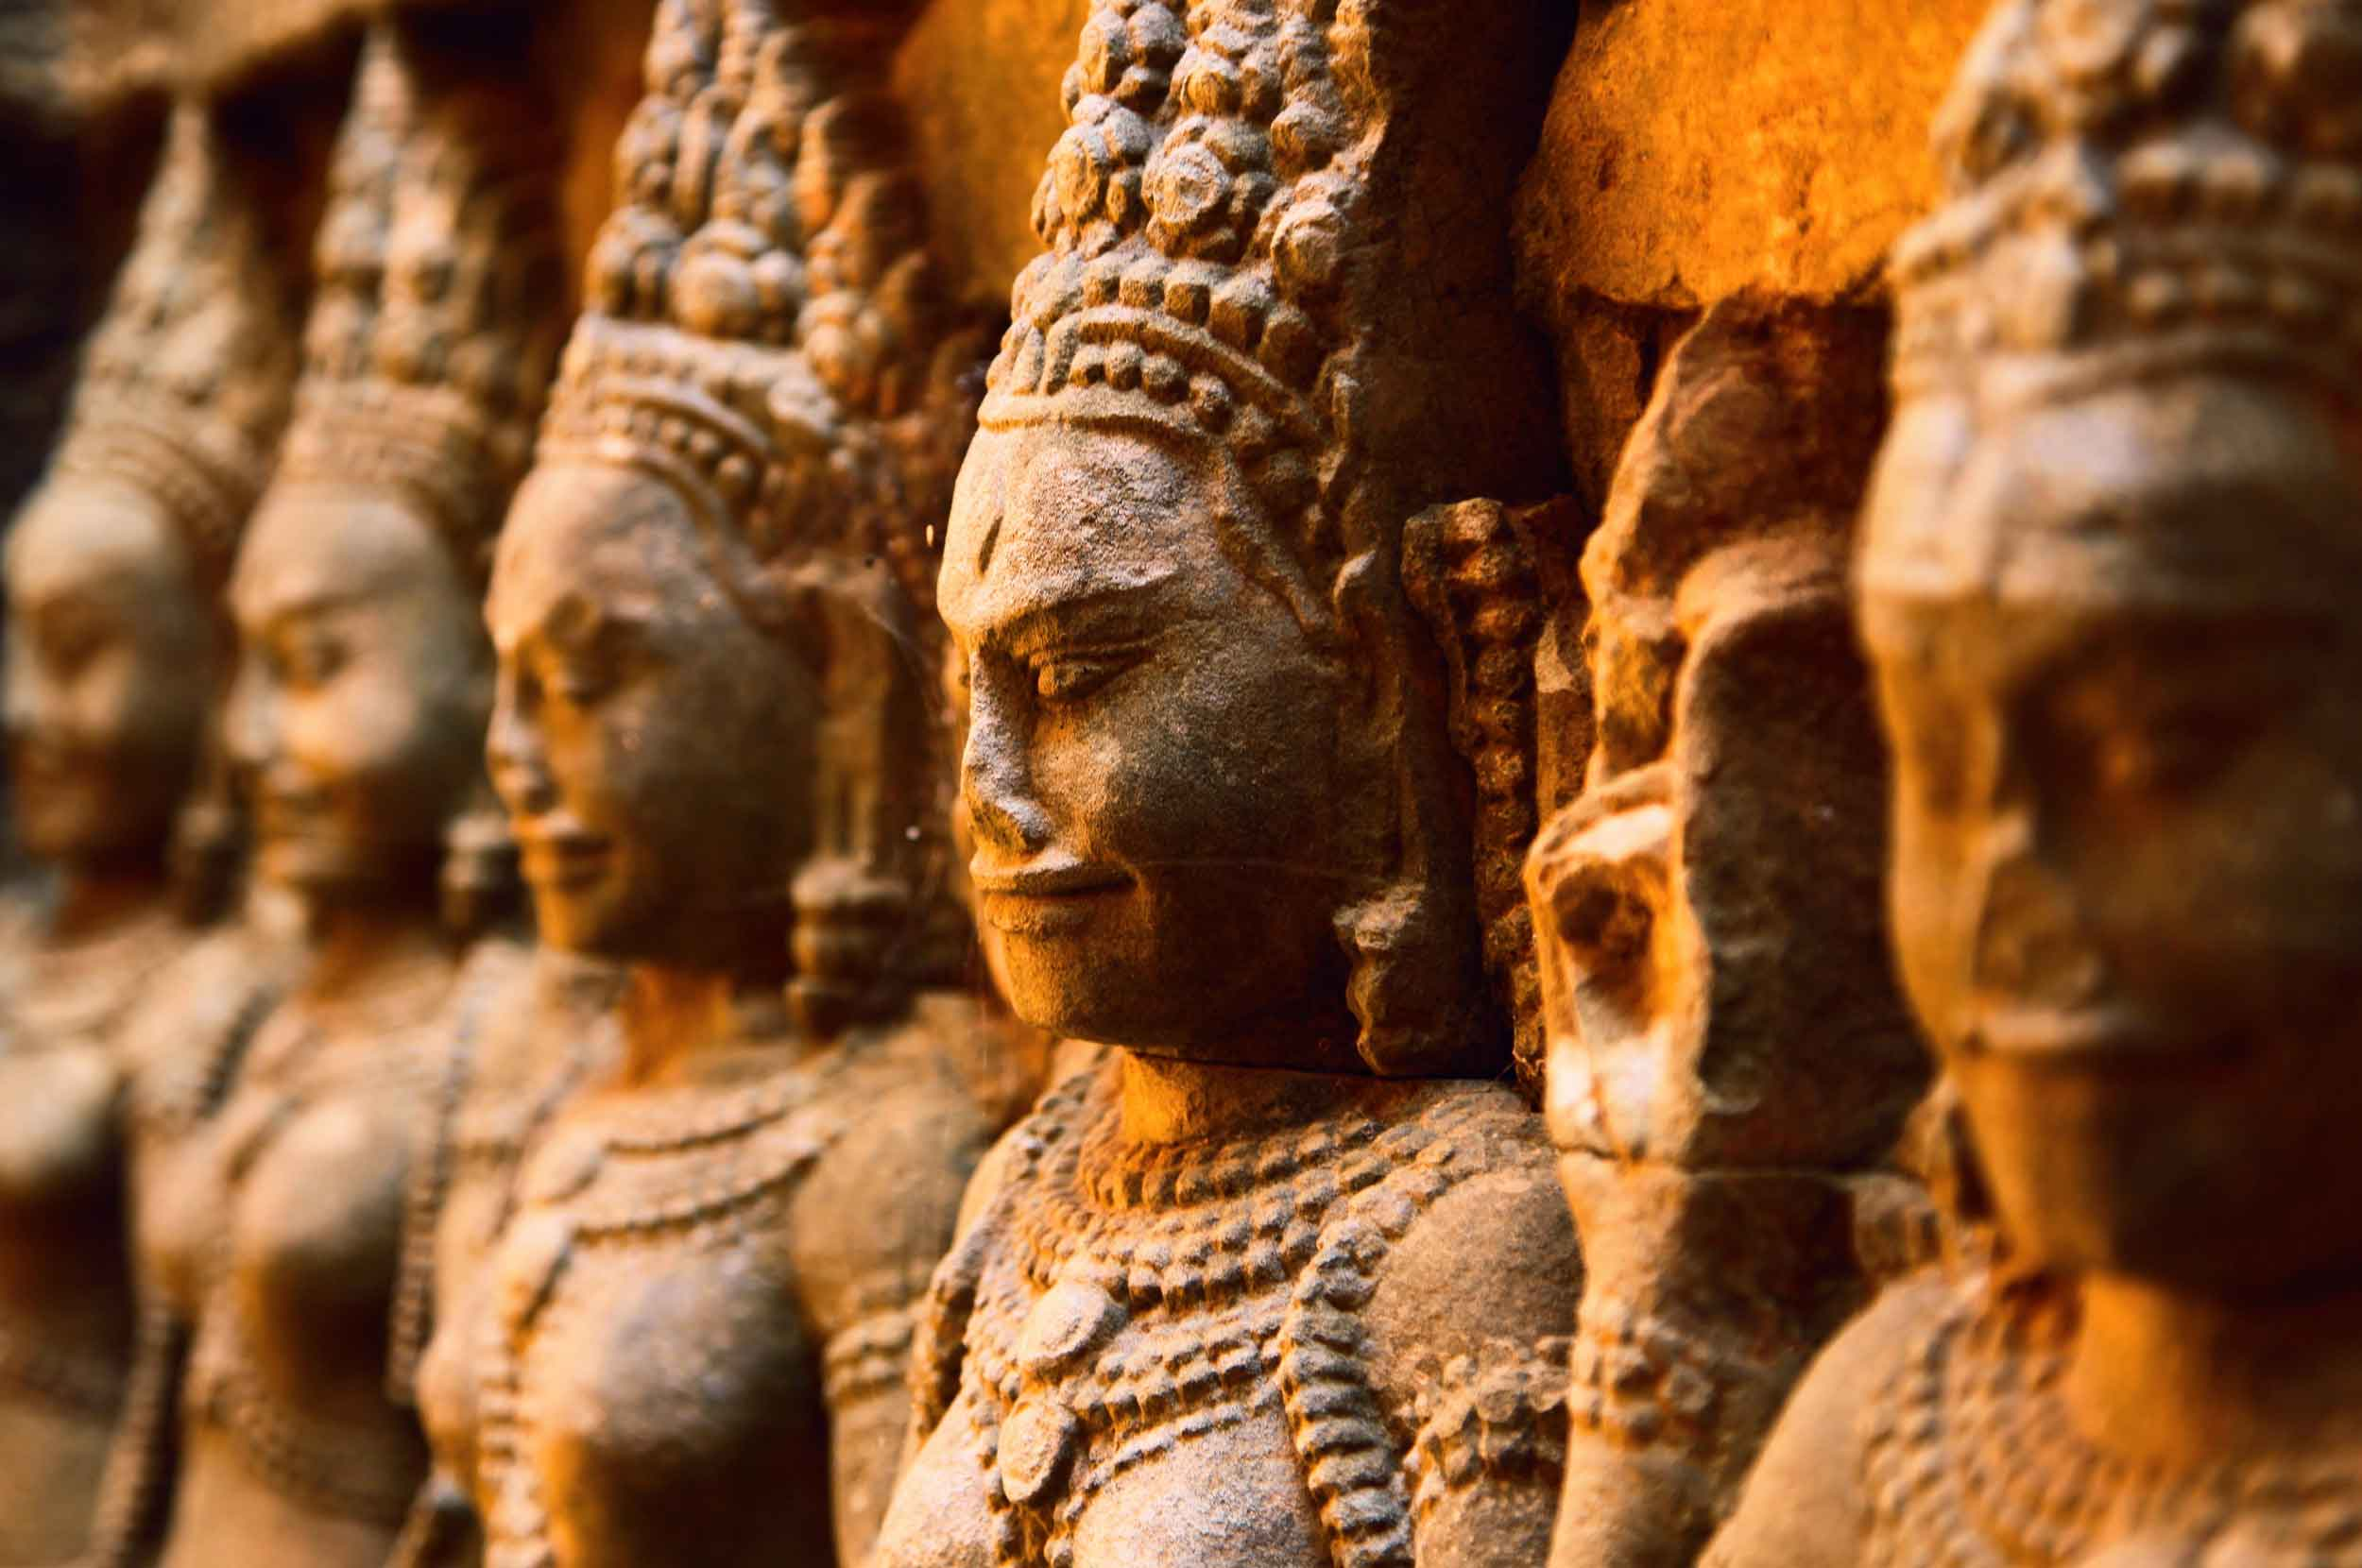 Enjoy your own Cambodia with amazing experiences